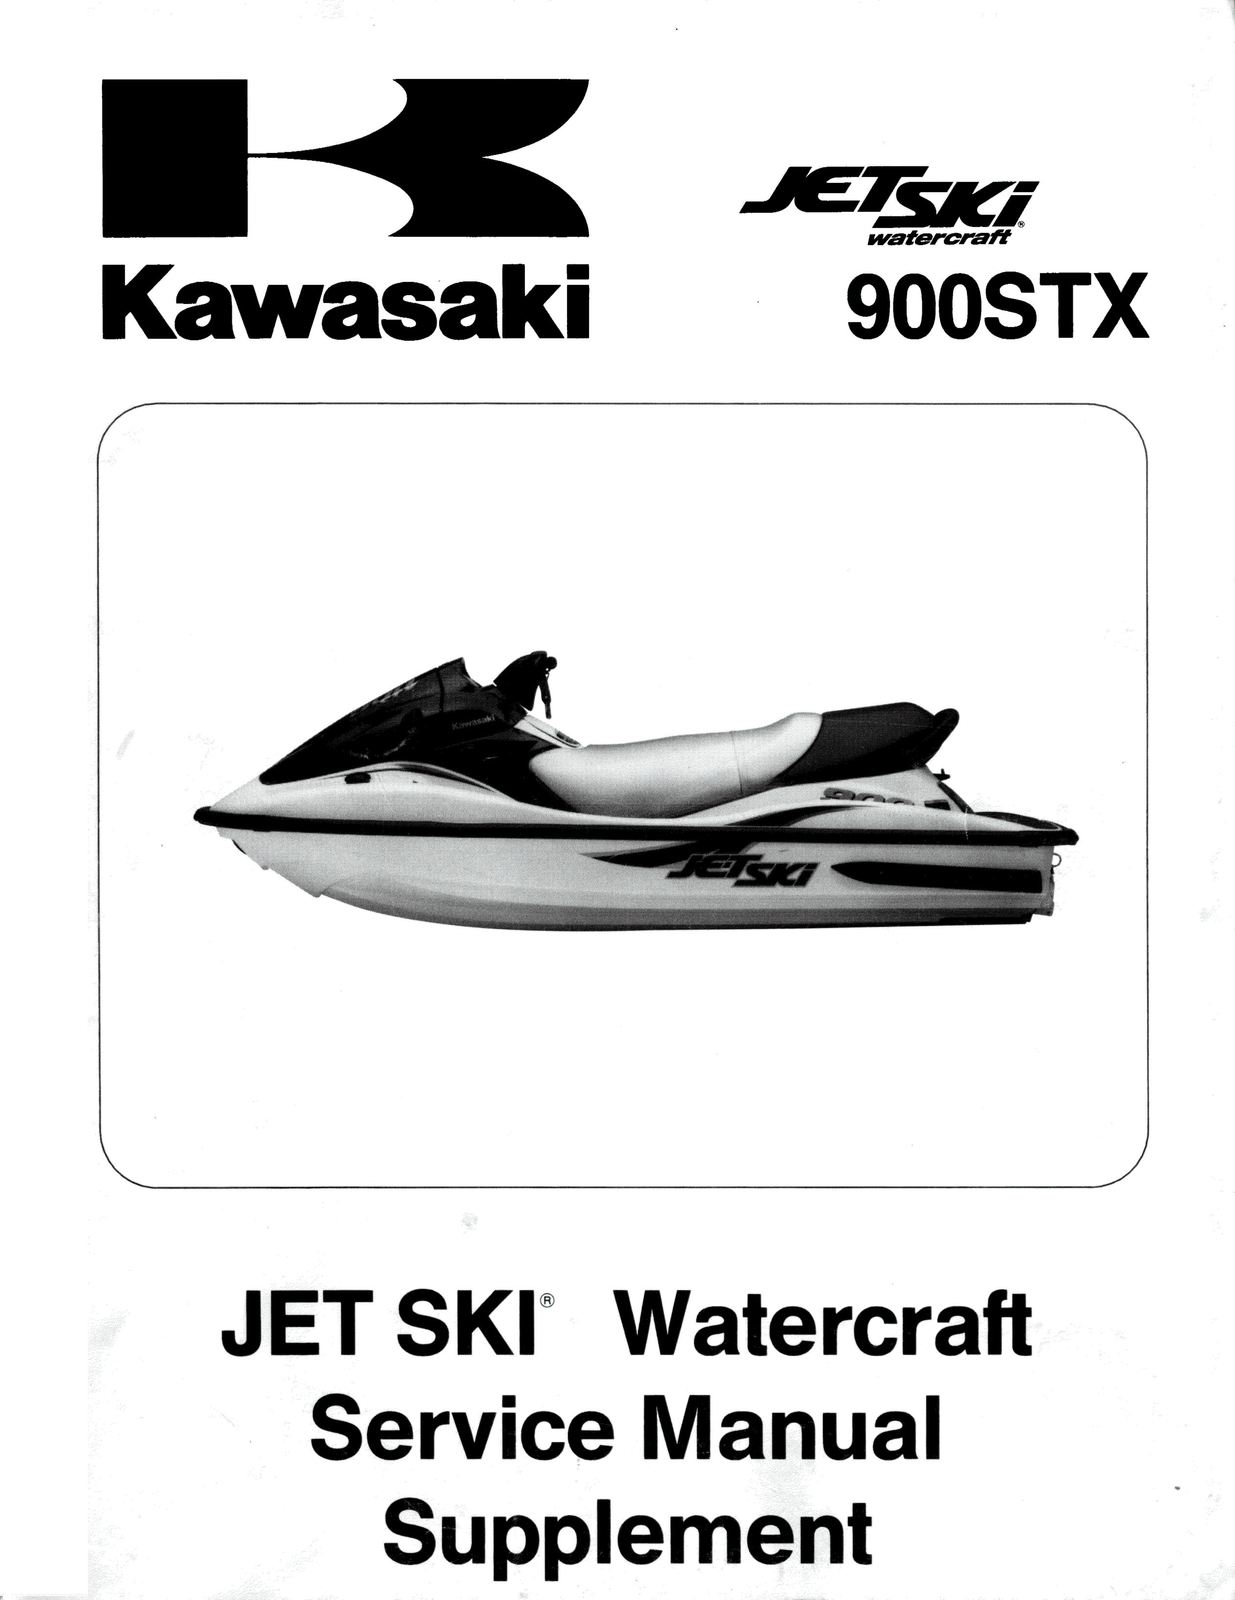 Pages from jetski 900stx 2001 supplement. Pages from jetski 900stx 2001  supplement. 2001 KAWASAKI JETSKI 900 STX 900STX SHOP SERVICE REPAIR MANUAL  ...